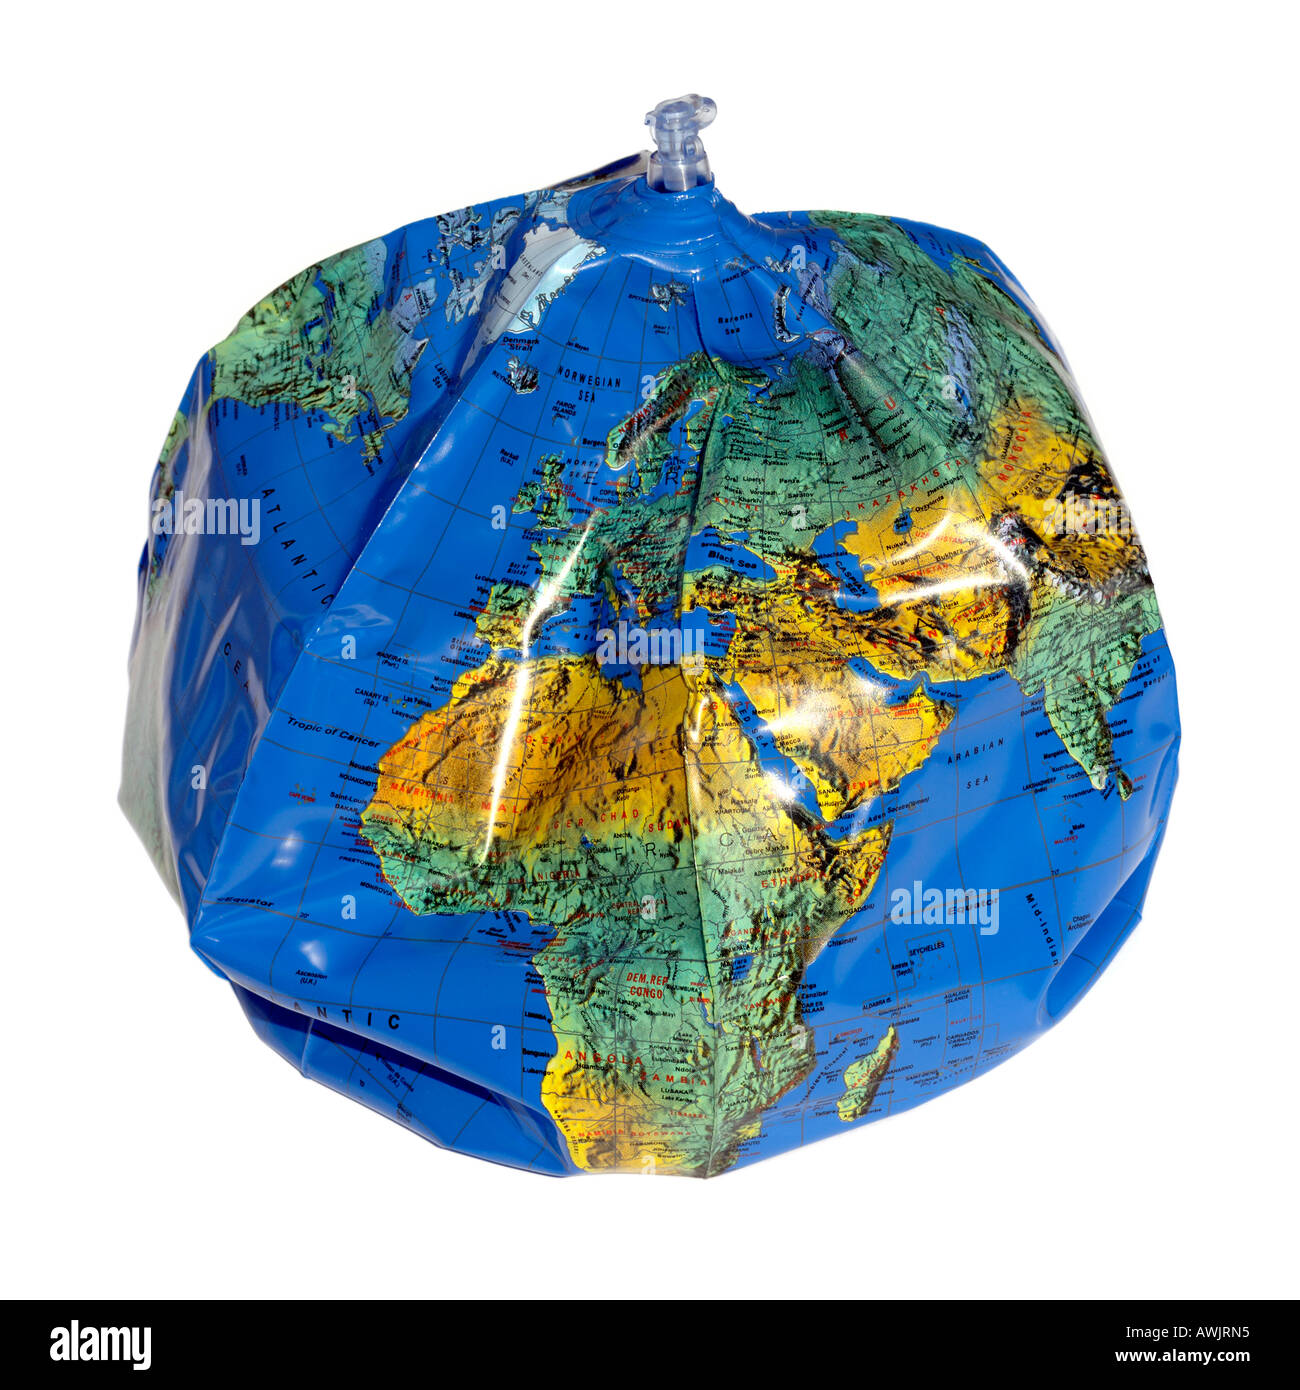 Inflatable Globe World Map. Deflated inflatable globe Stock Photo  9484180 Alamy